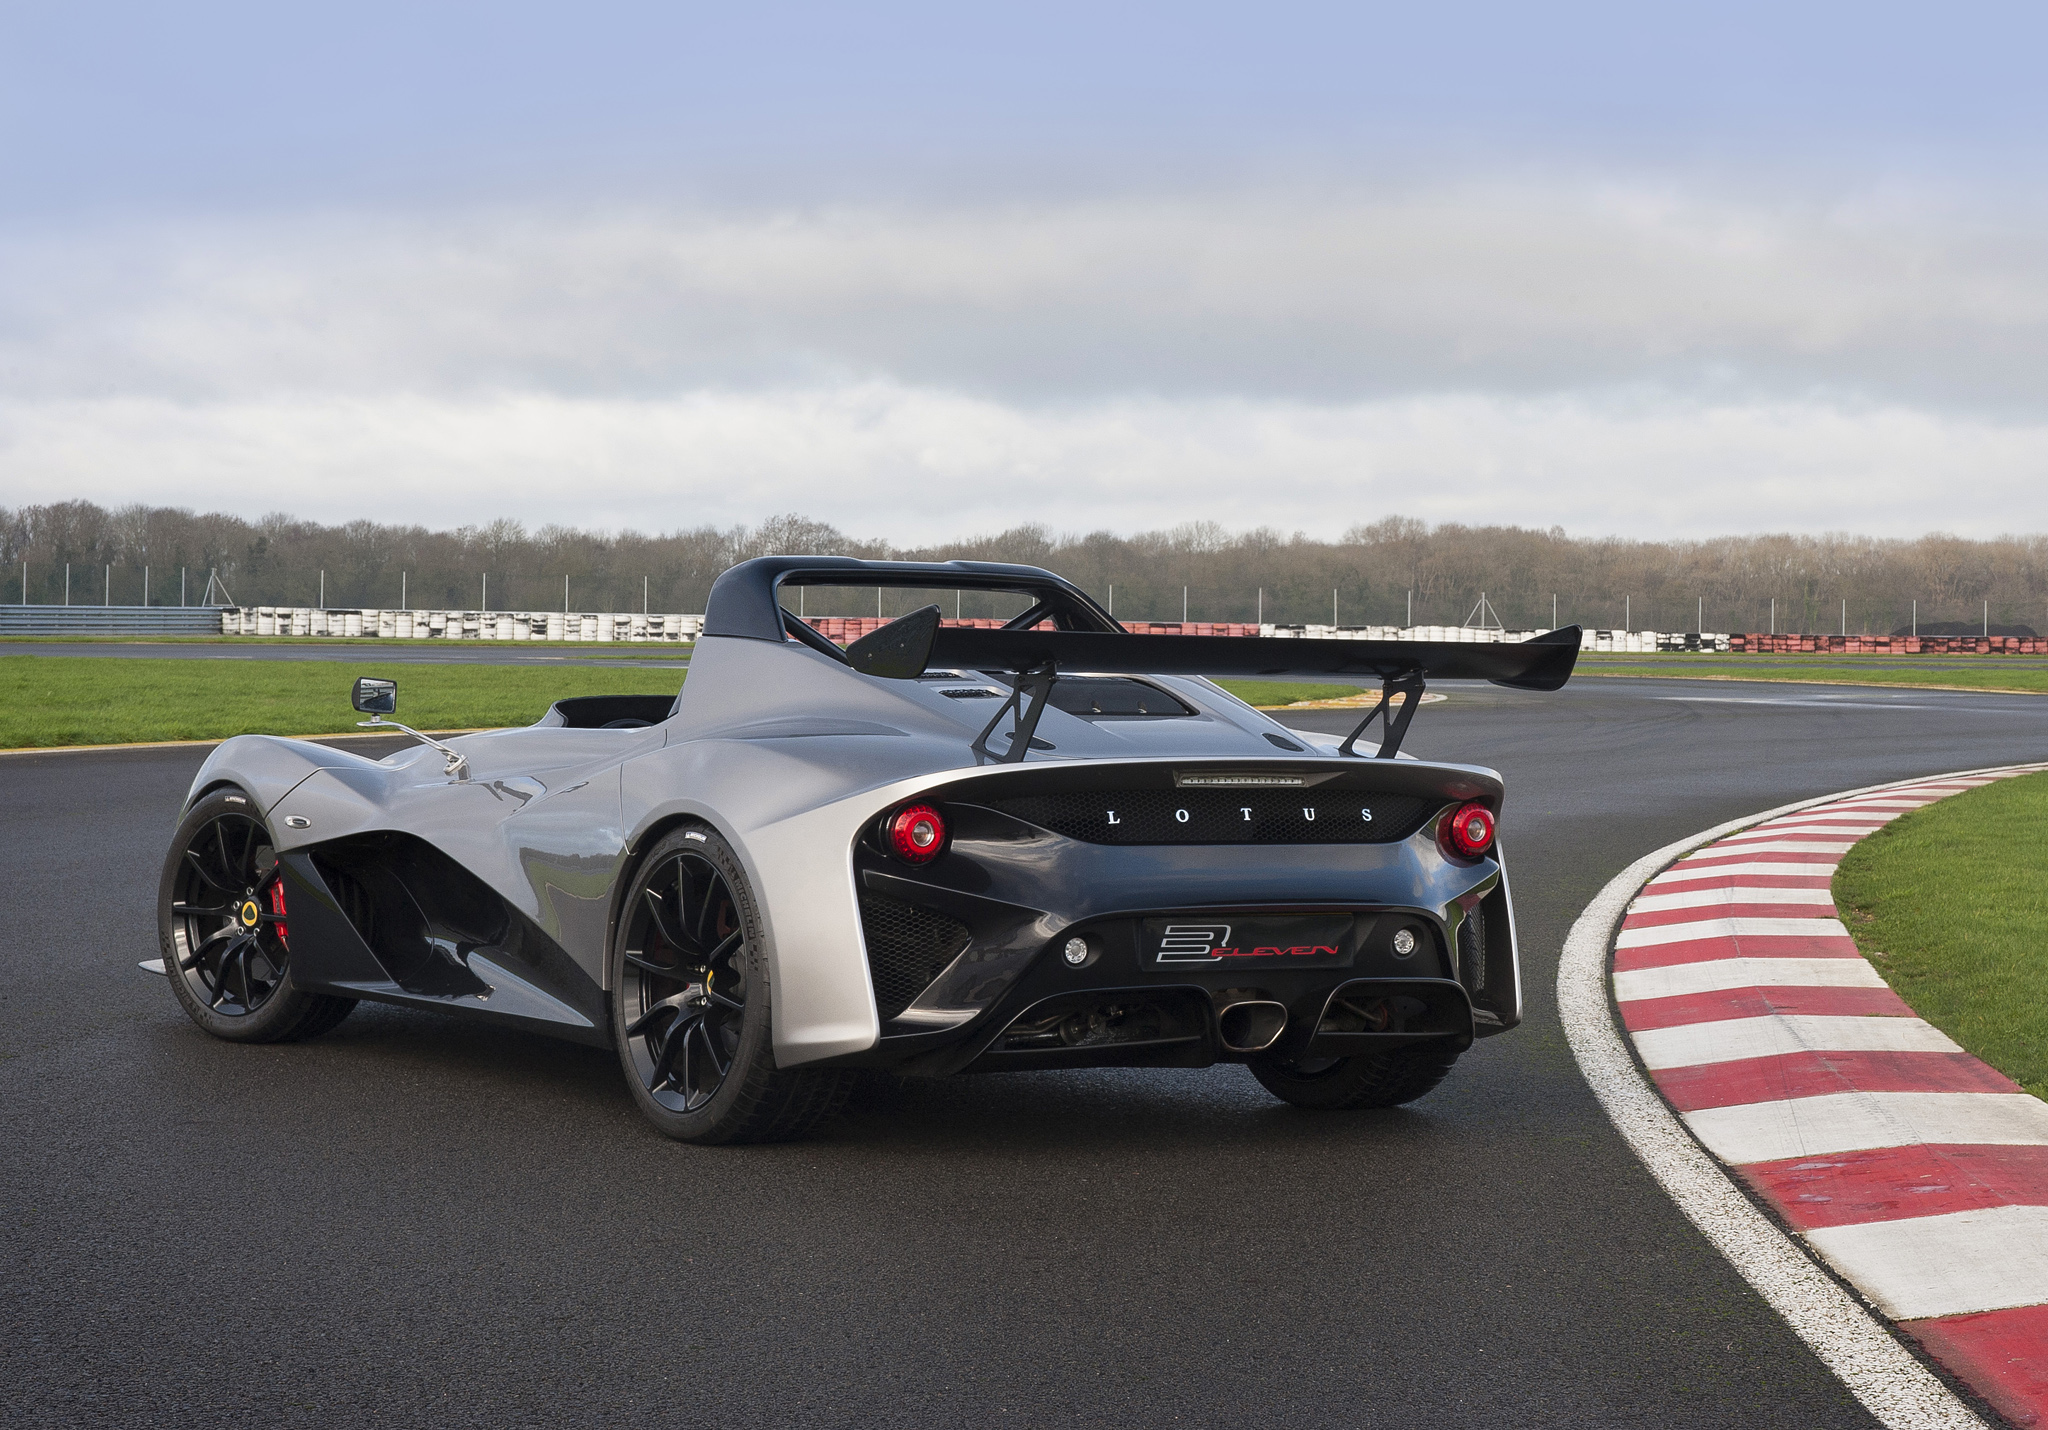 Lotus_3-Eleven_Road_Rear_3QTRS